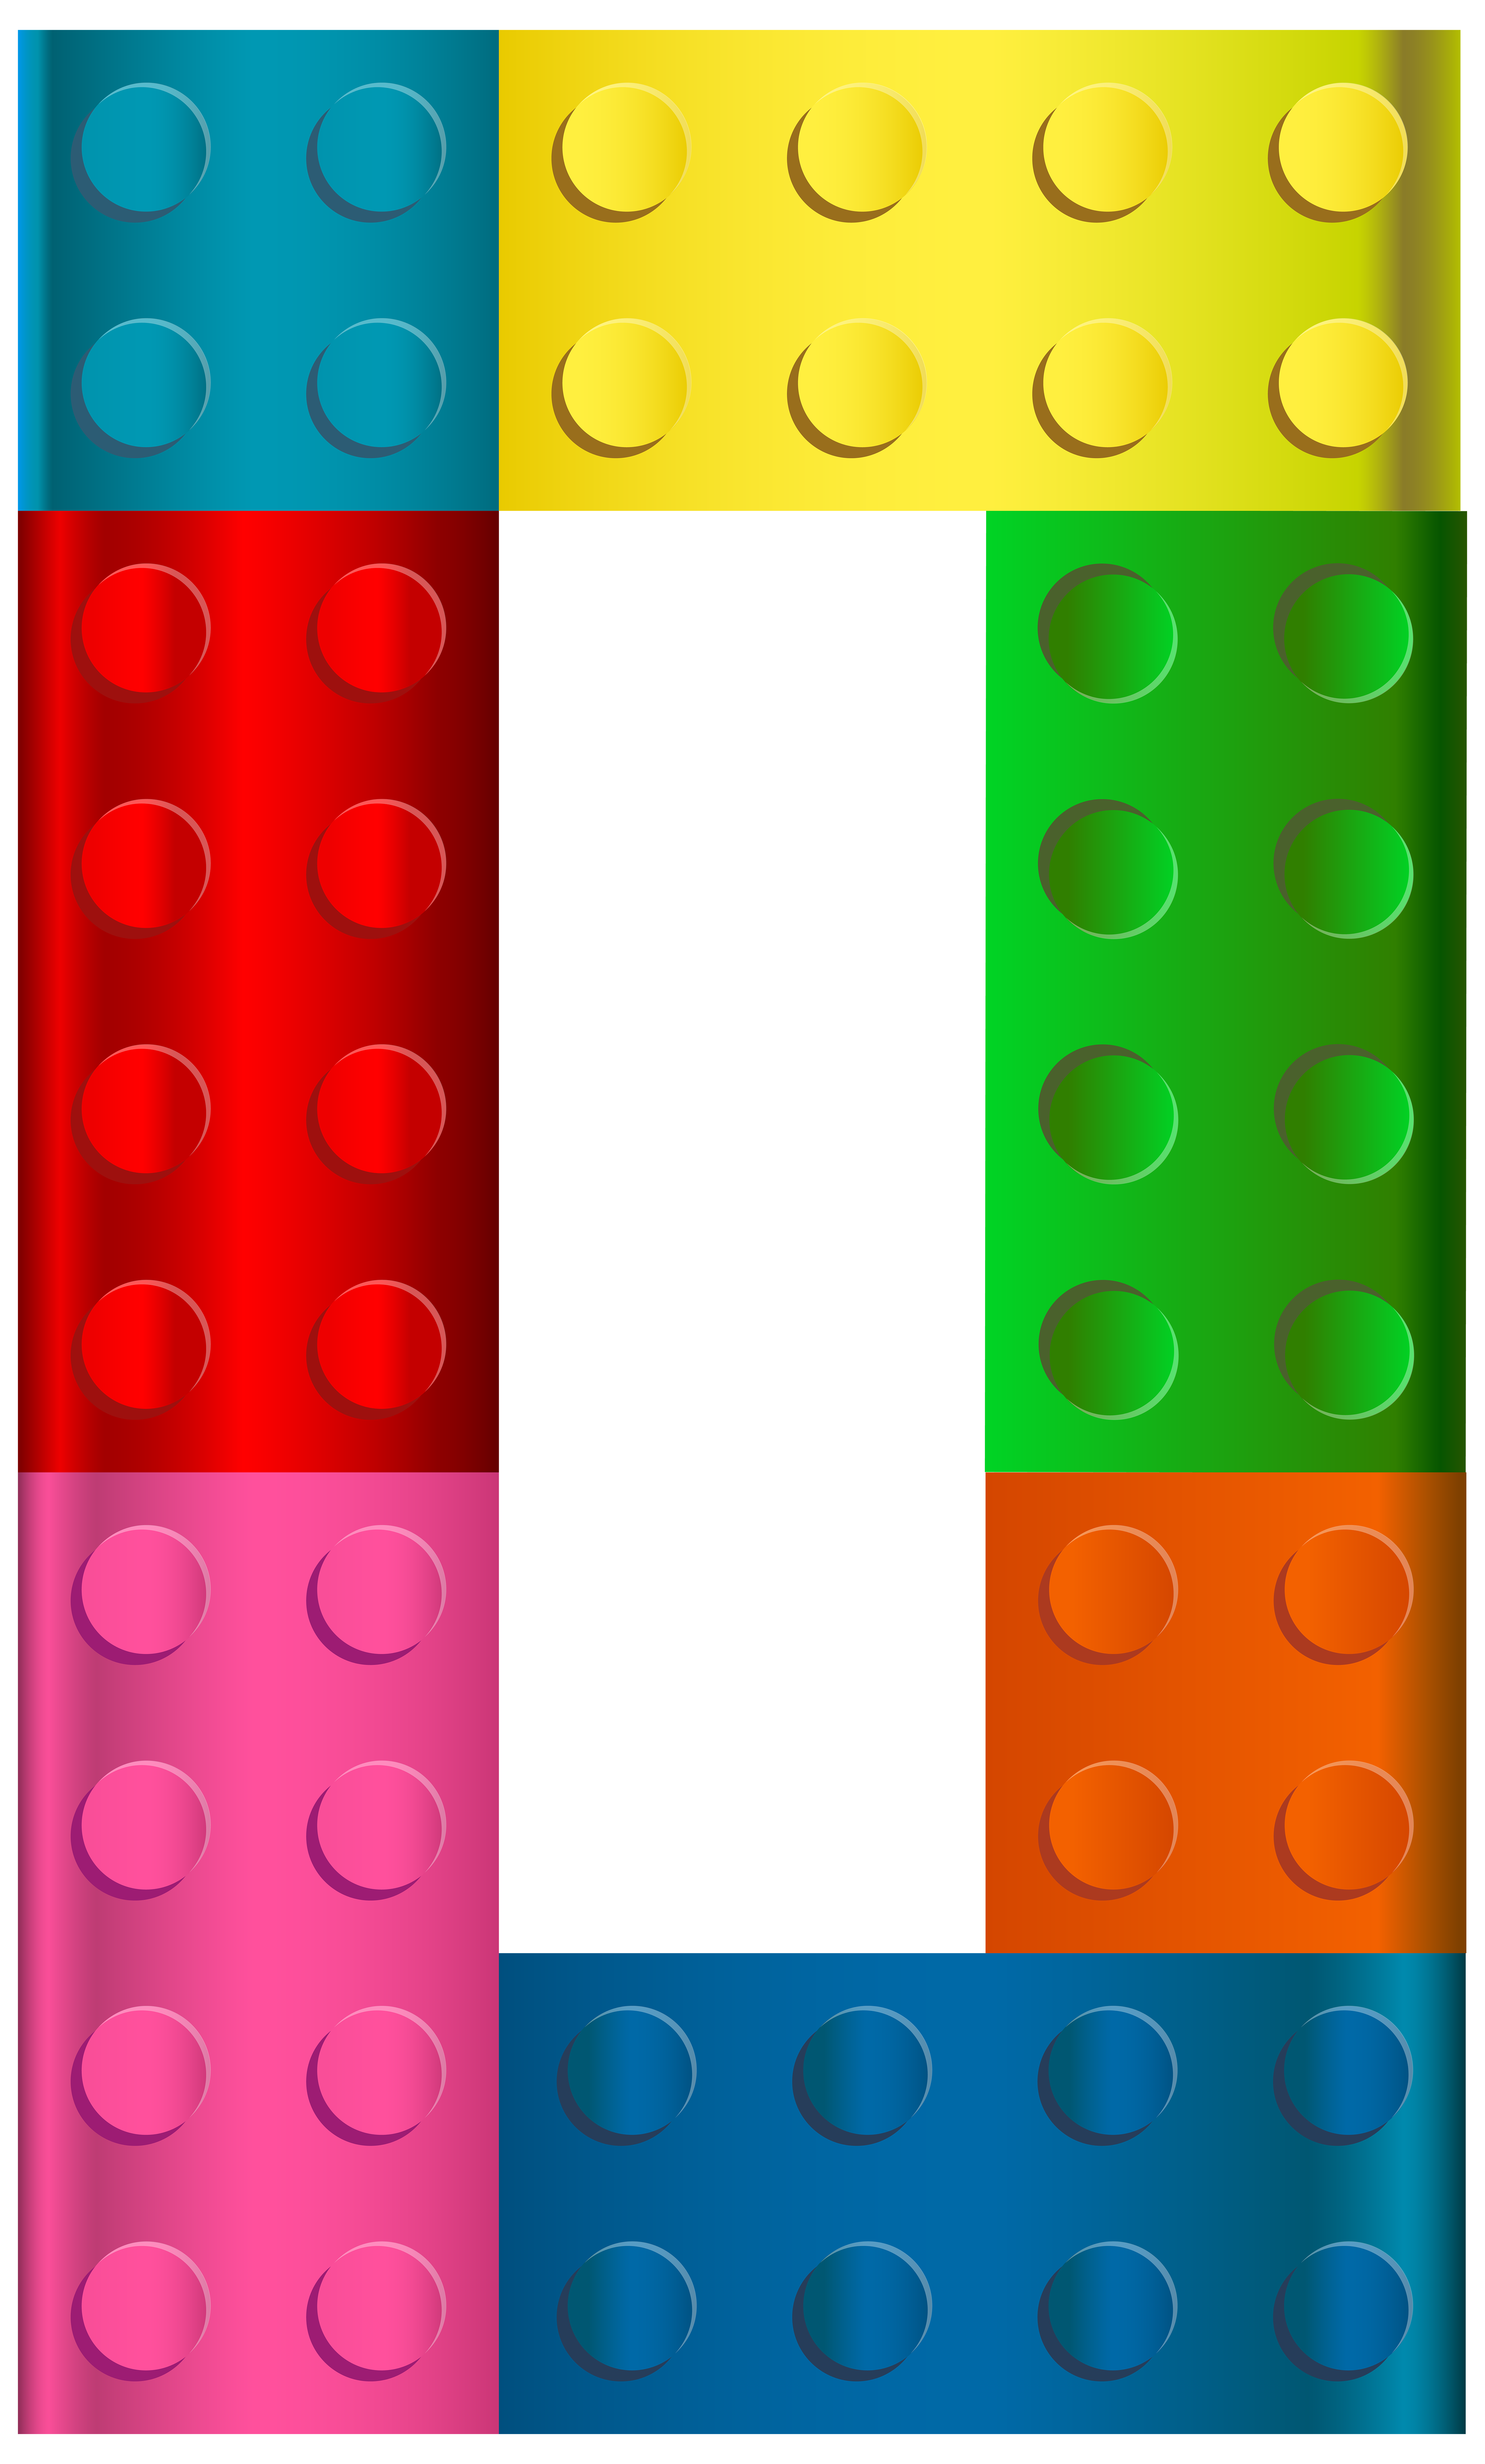 Free LEGO Cliparts Borders, Download Free Clip Art, Free Clip Art on.